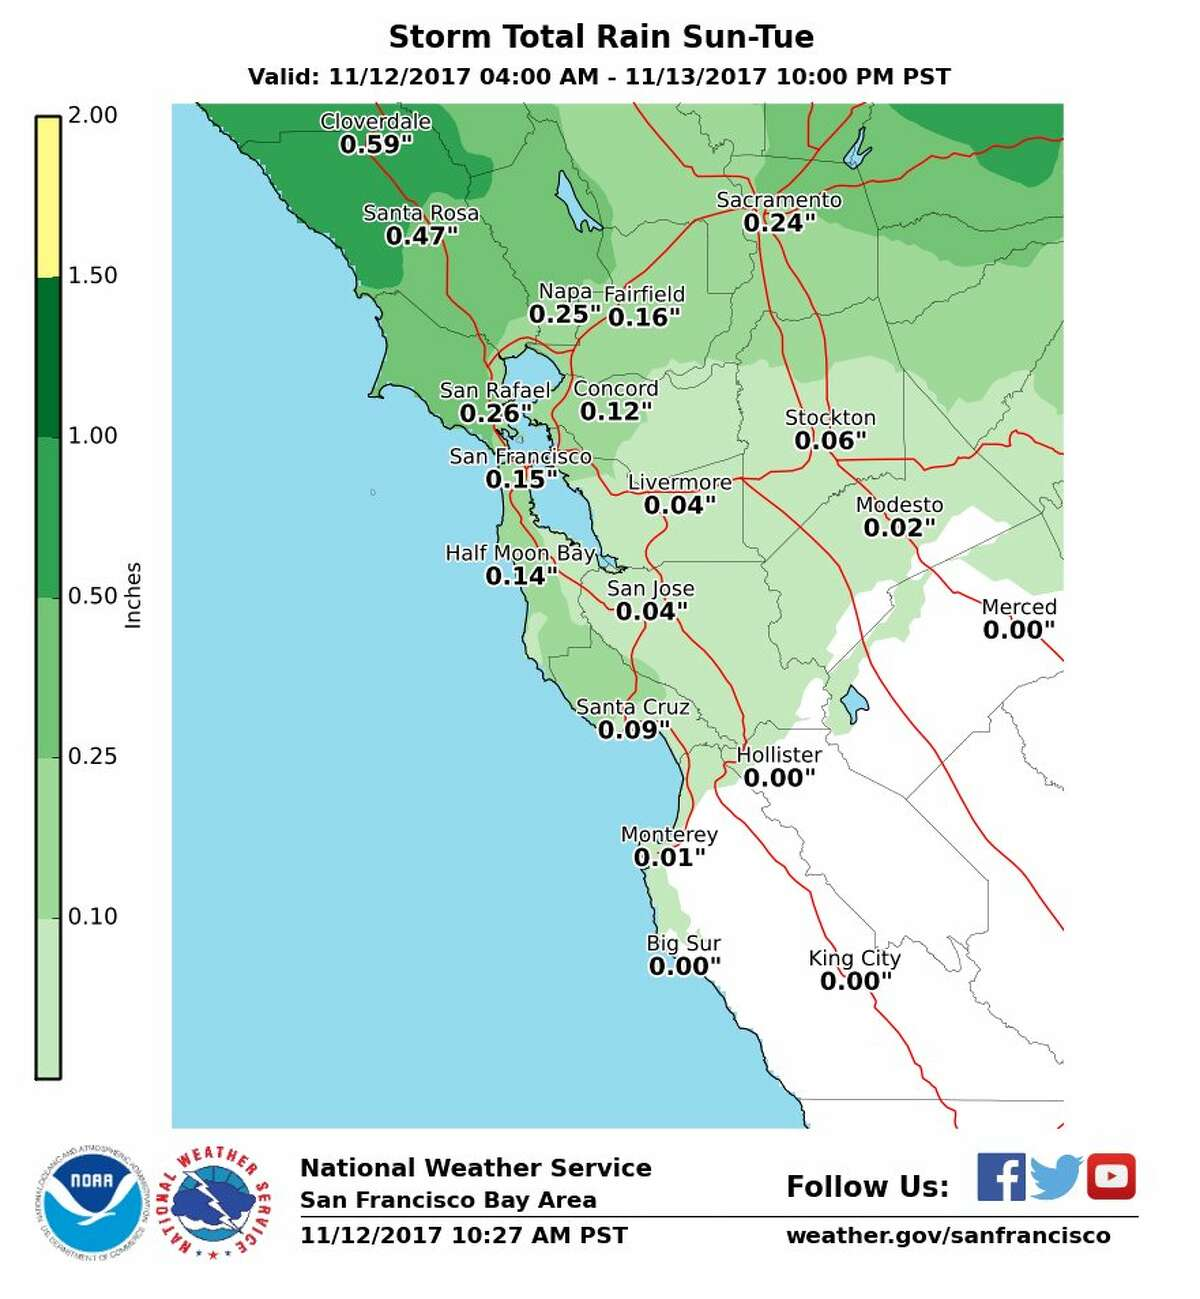 The National Weather Service was predicting storms in the Bay Area throughout the week of Nov. 12, 2017.